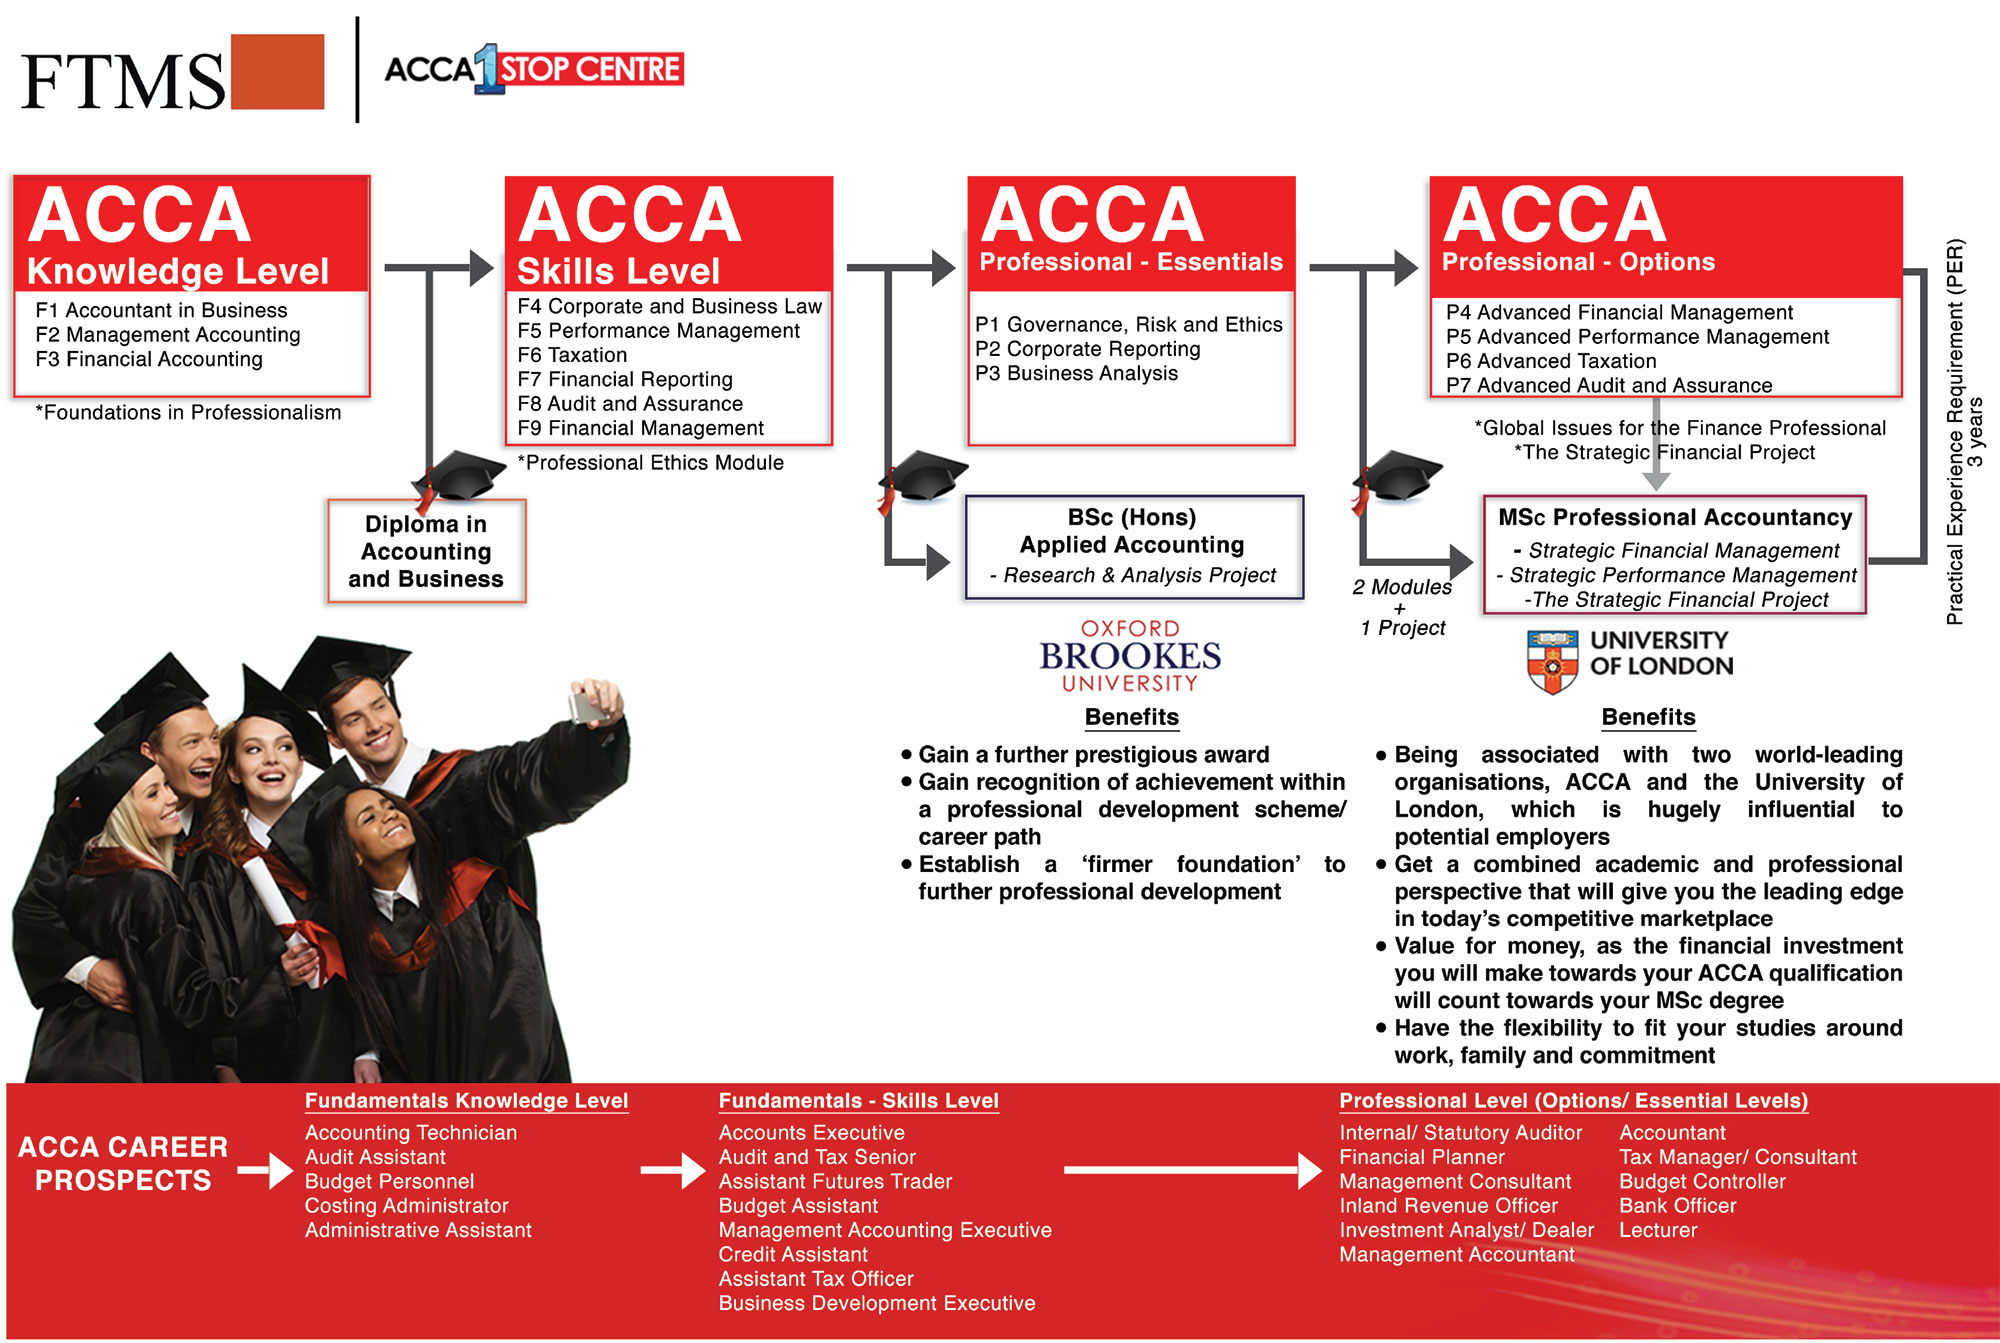 About ACCA | FTMSGlobal Academy